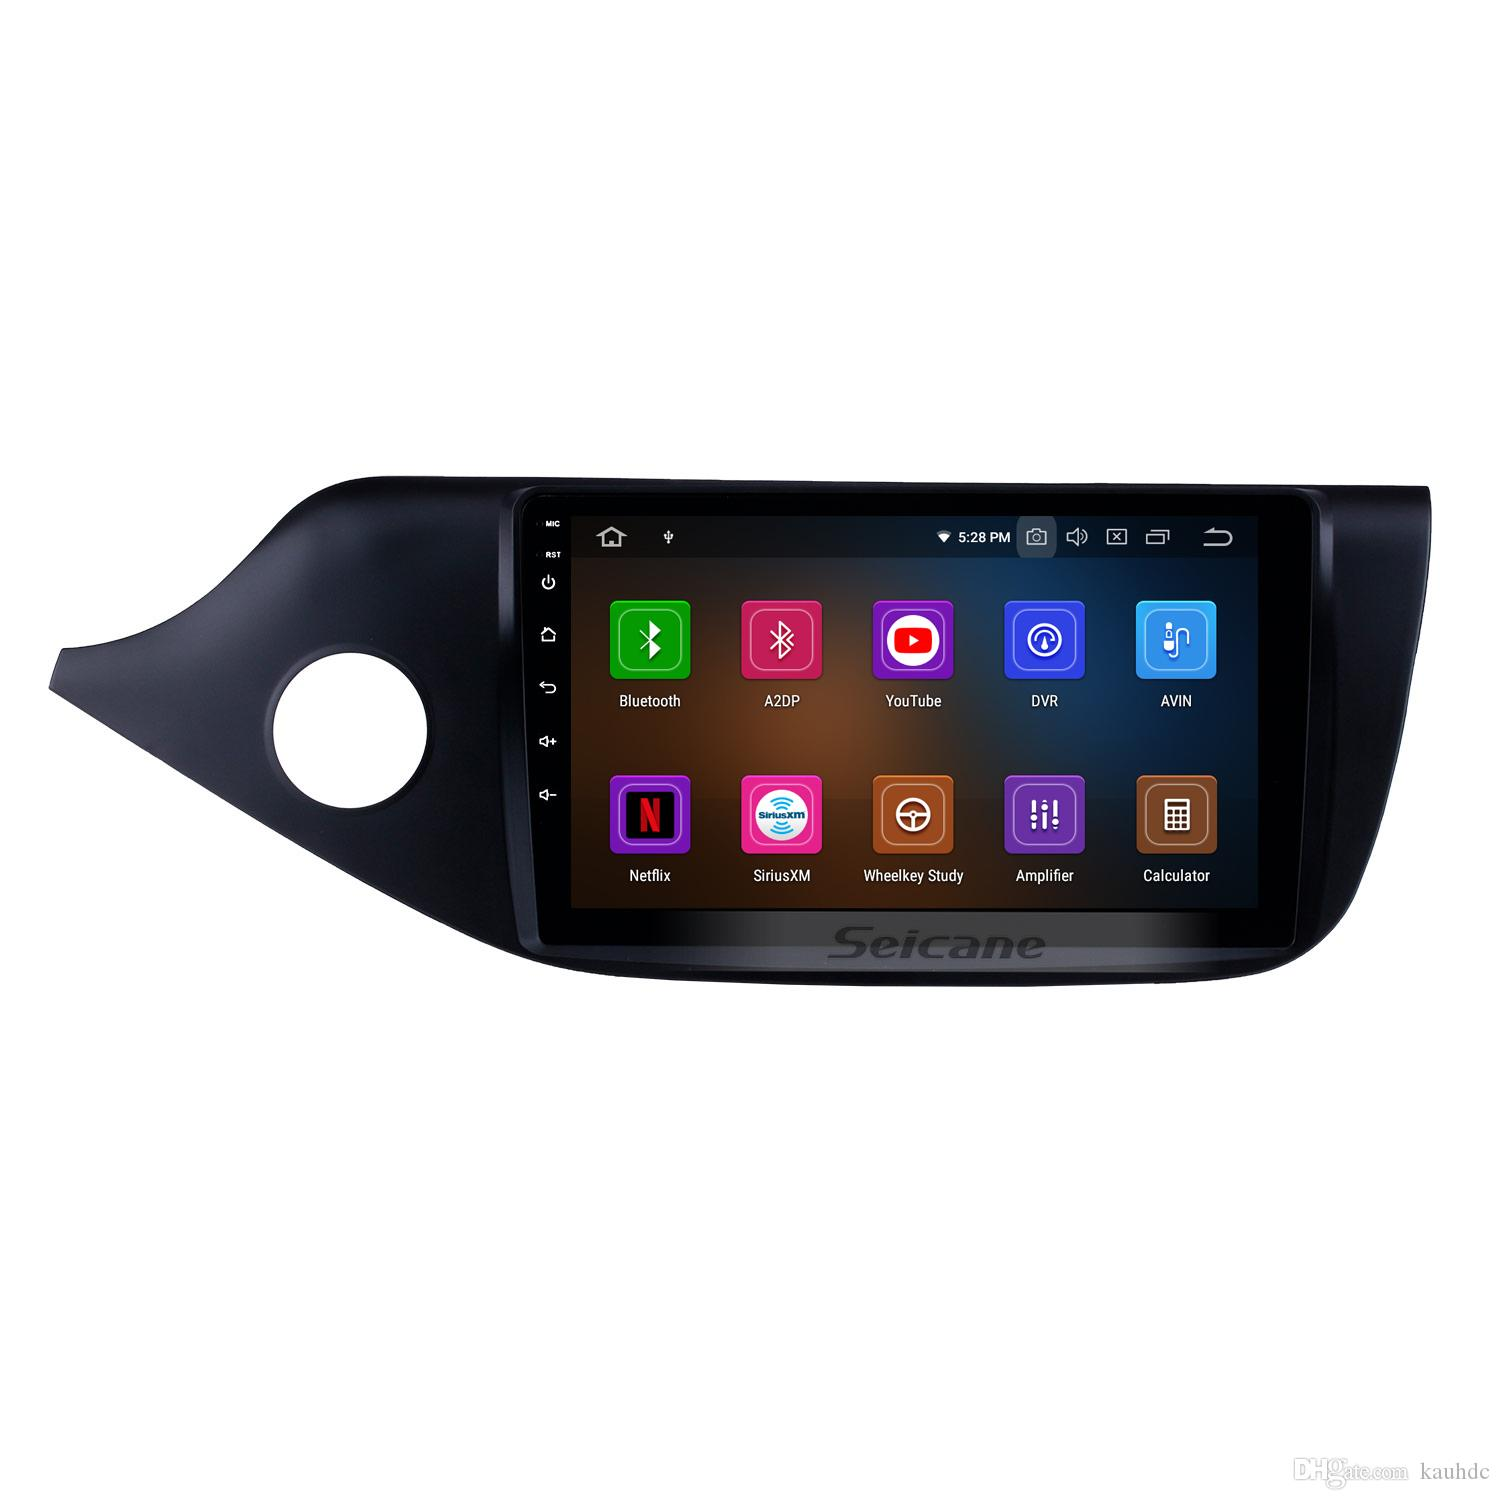 OEM 9 inch Android 9.0 Car GPS Navigation Radio for 2012 2013 2014 Kia Ceed (LHD) with WIFI USB Bluetooth support car dvd Backup Camera DAB+